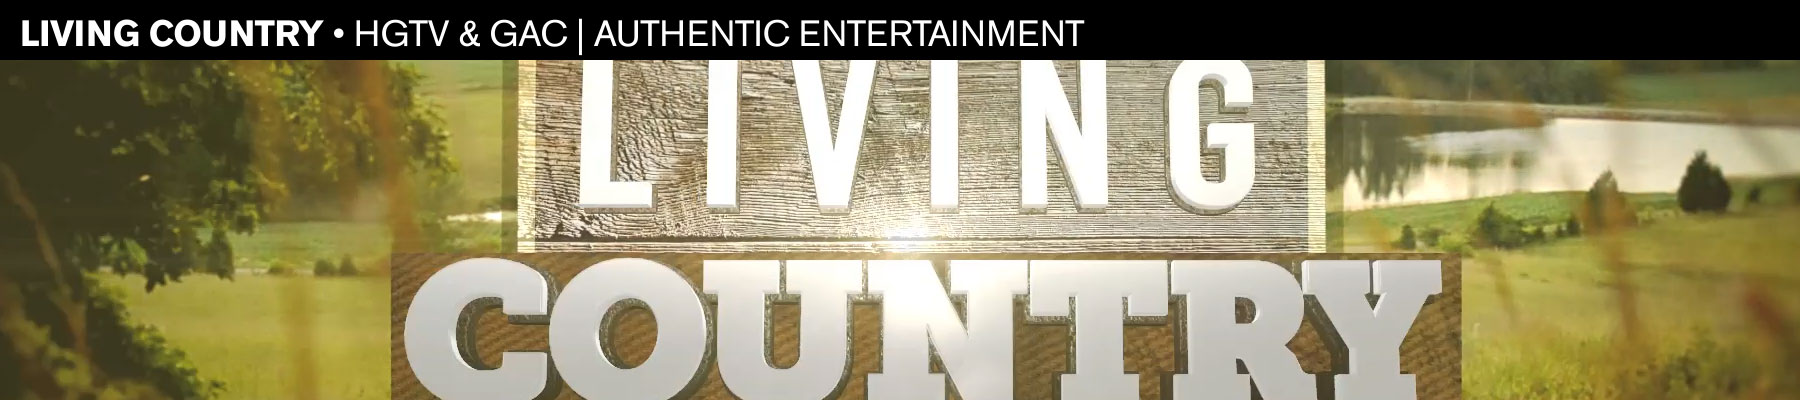 Living Country • HGTV & GAC | Authentic Entertainment